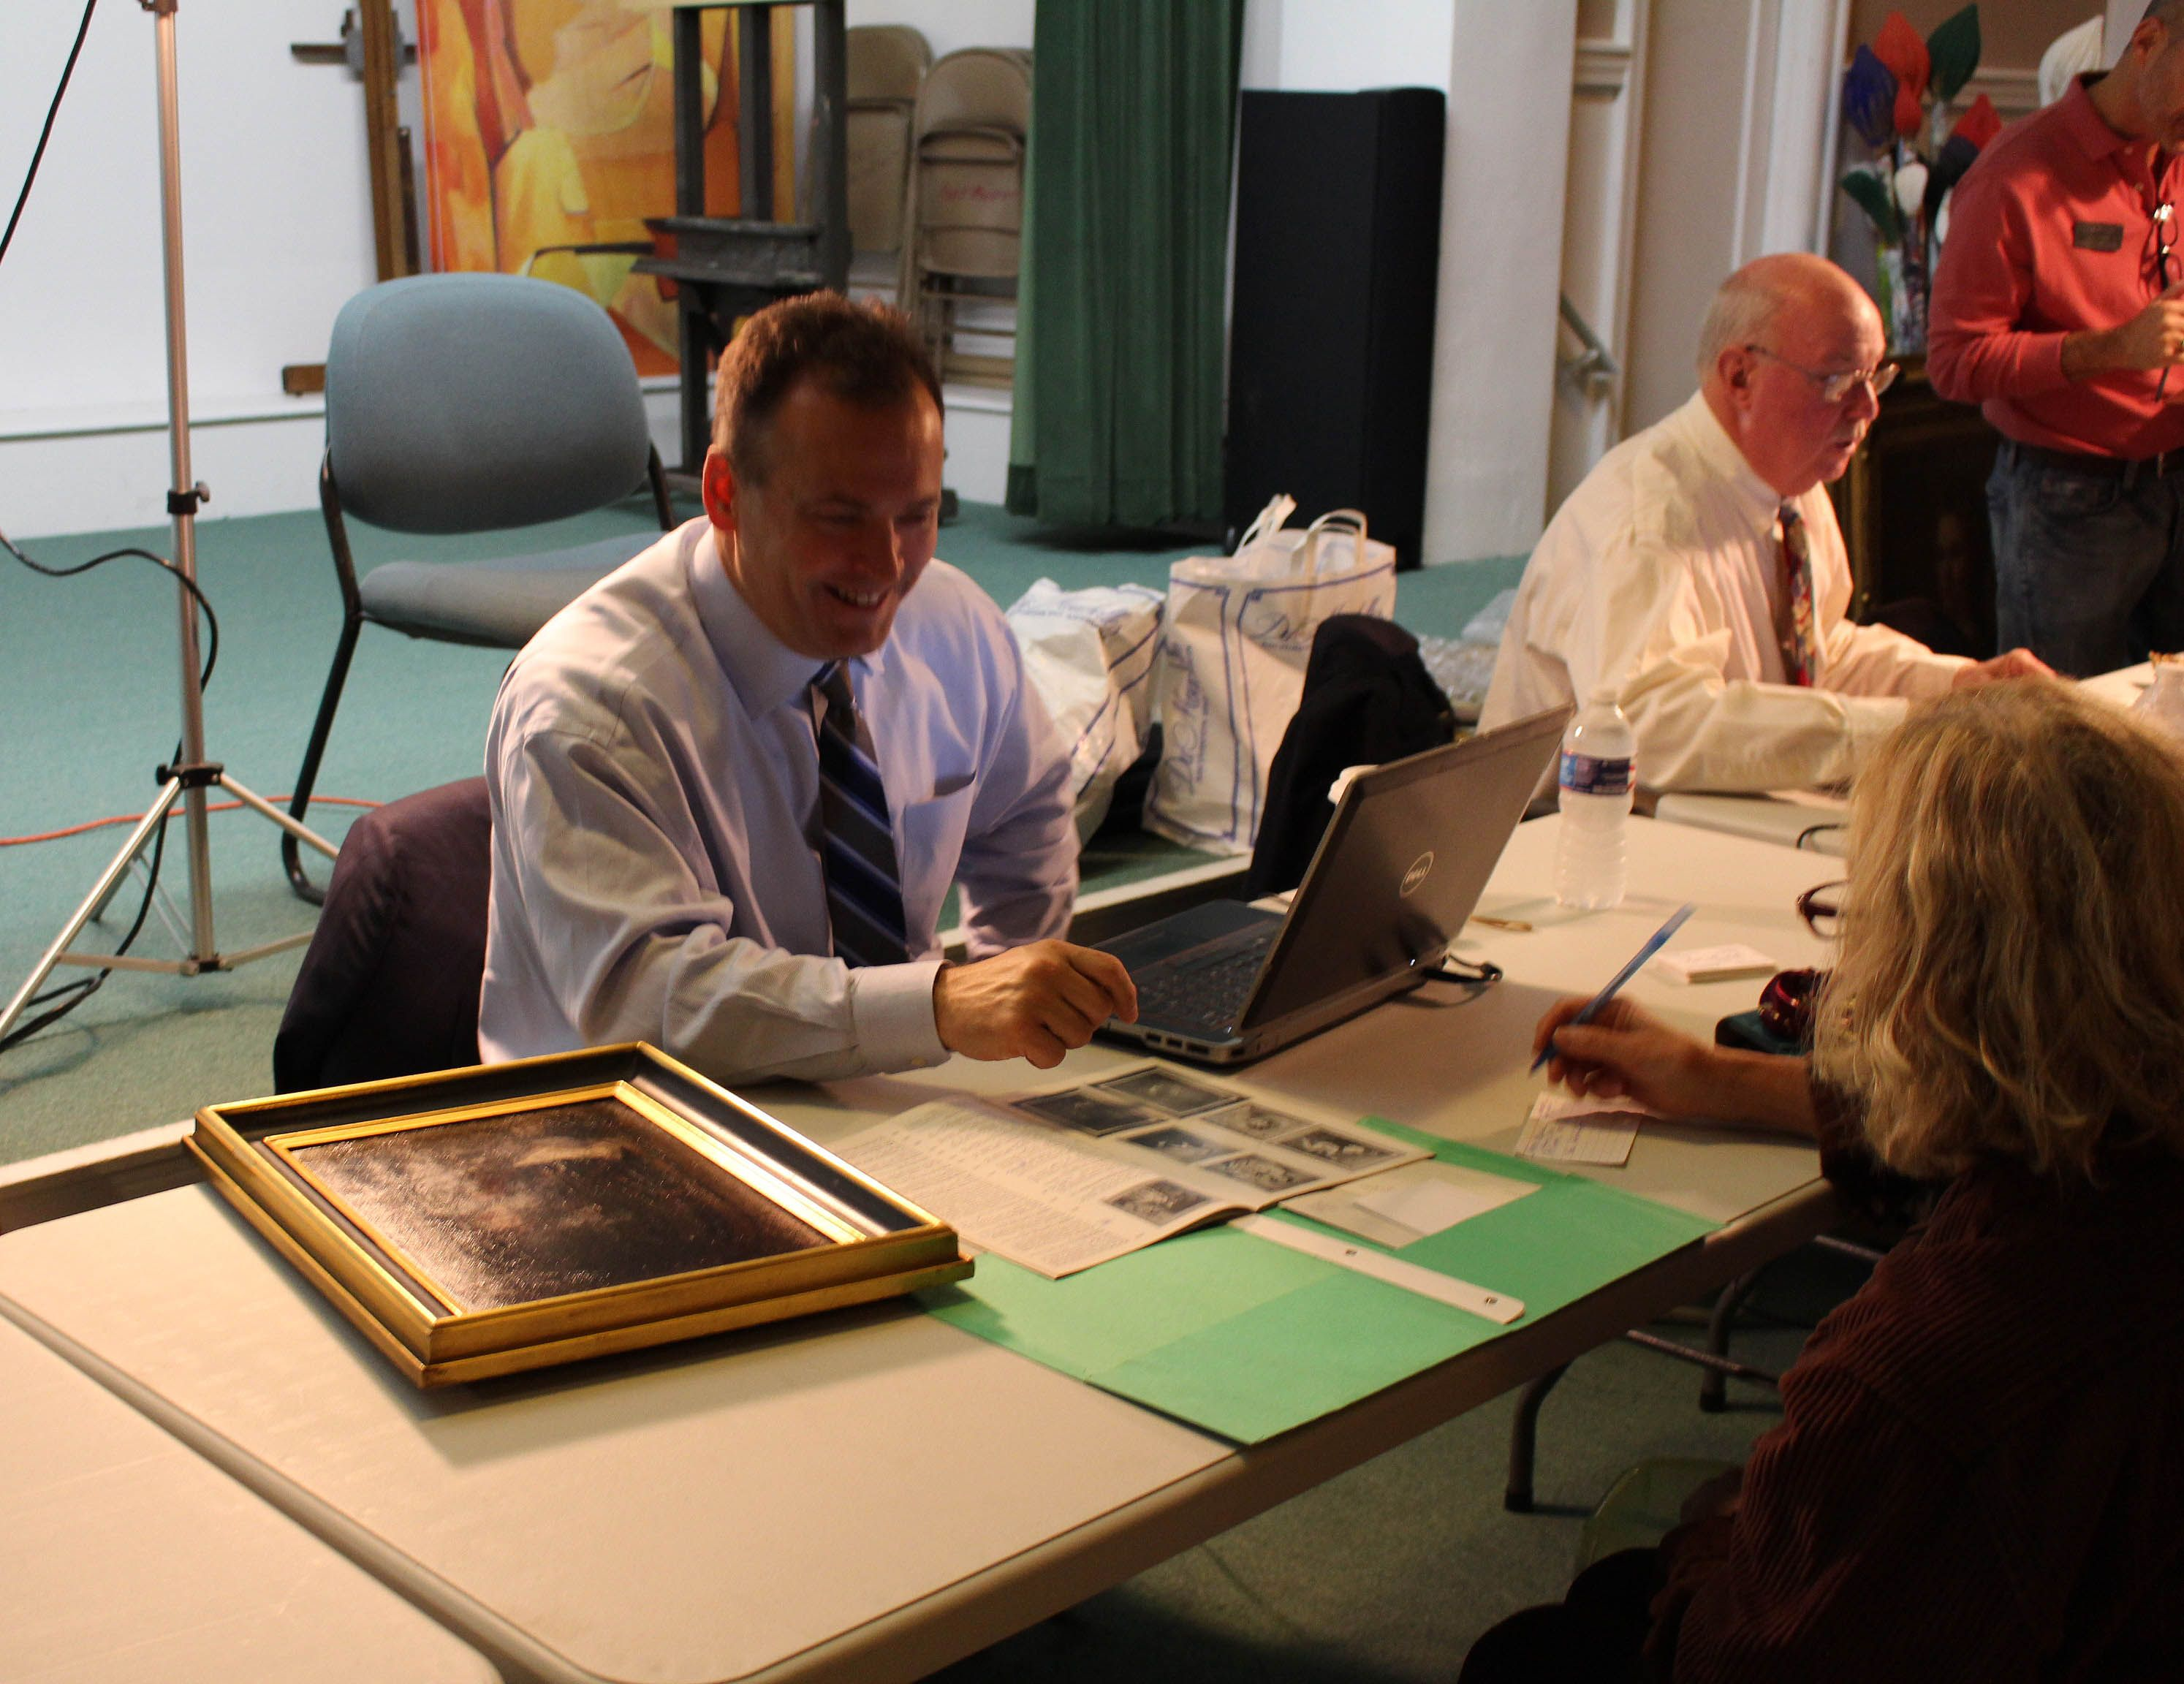 Annual appraisal fair comes to muskegon museum of art